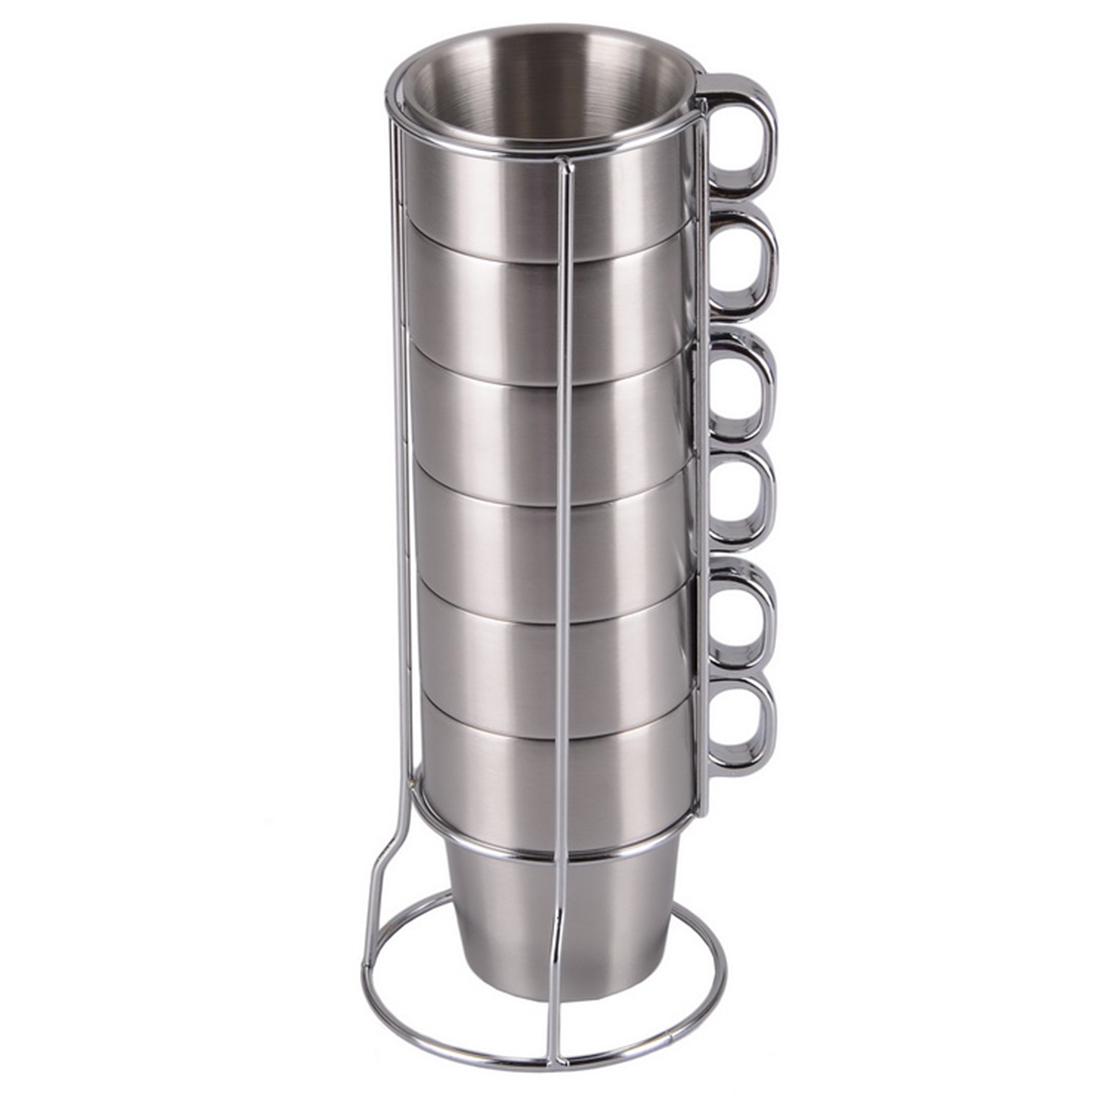 Hot Sale Brief Stainless Steel Coffee mug Solid Color Coffee cup sell by set 6 cups